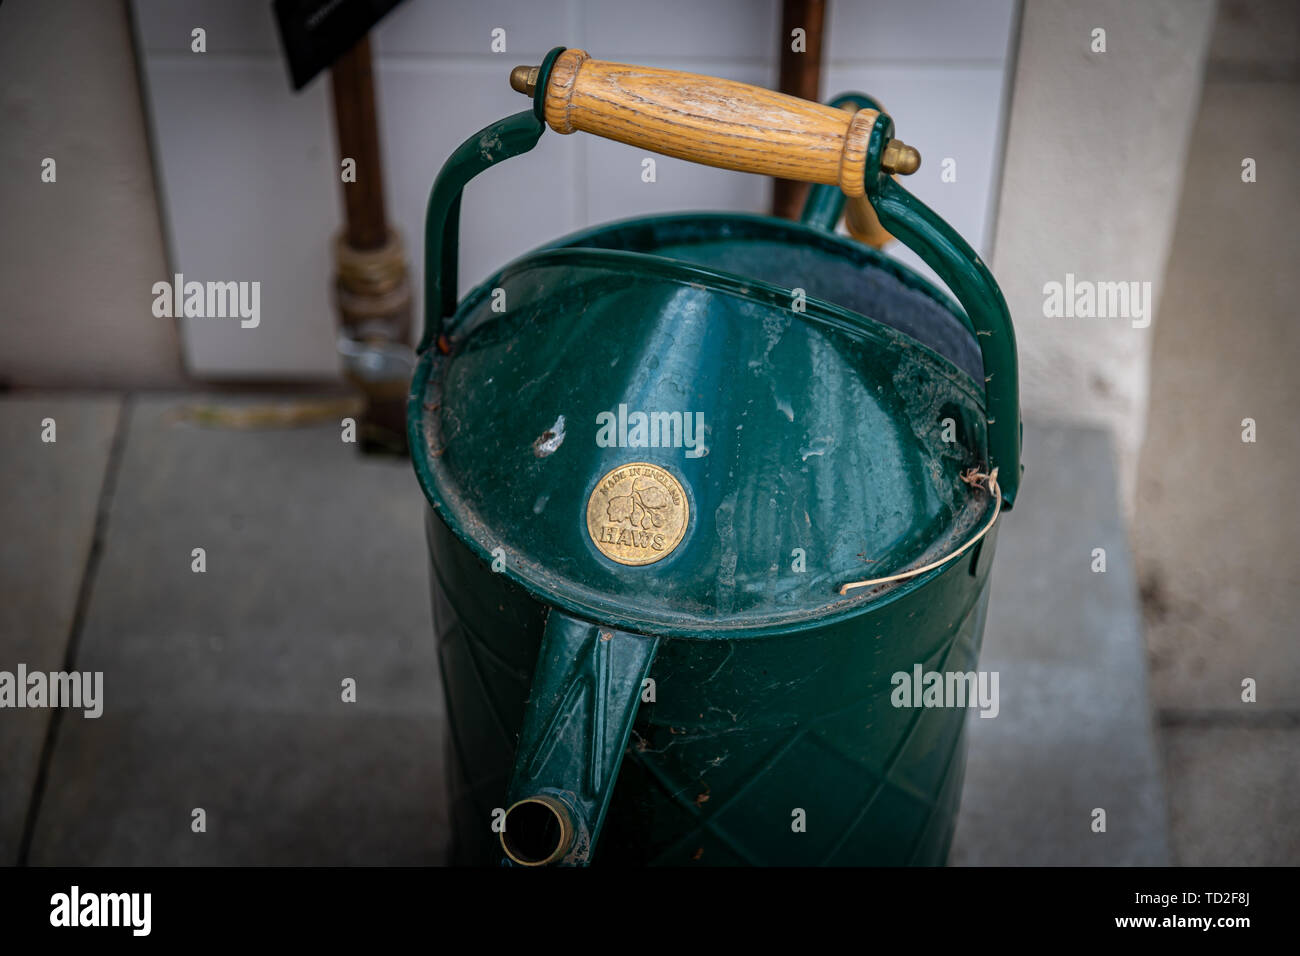 An old fashioned green water can ready for use in the Temperate House in Kew Gardens. - Stock Image